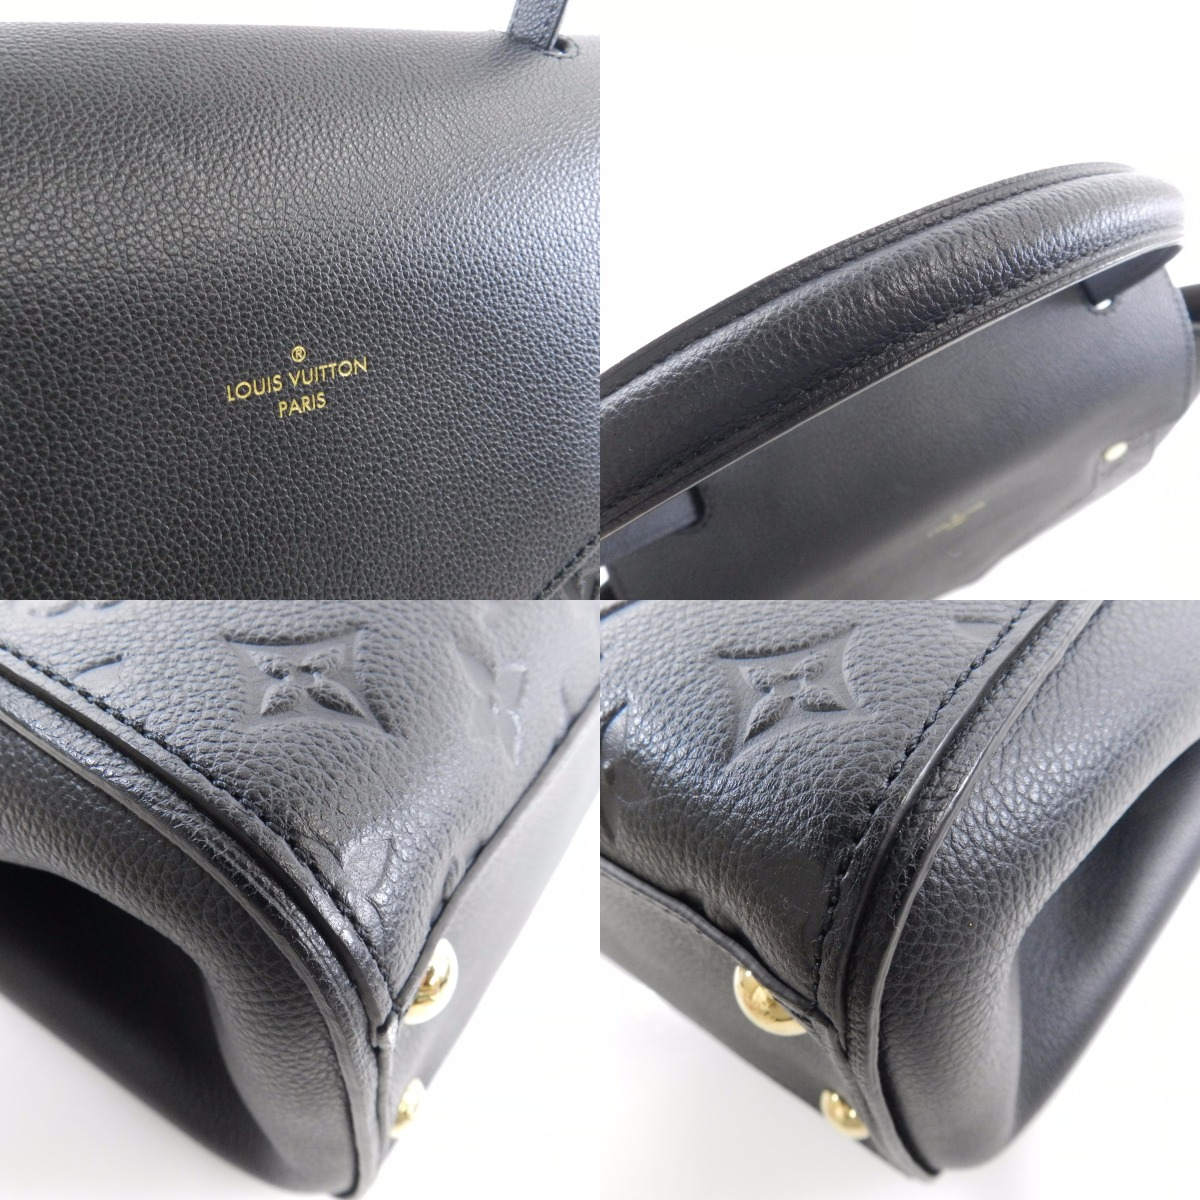 LOUIS VUITTON torokadero M50439手提包放大器火炬女士